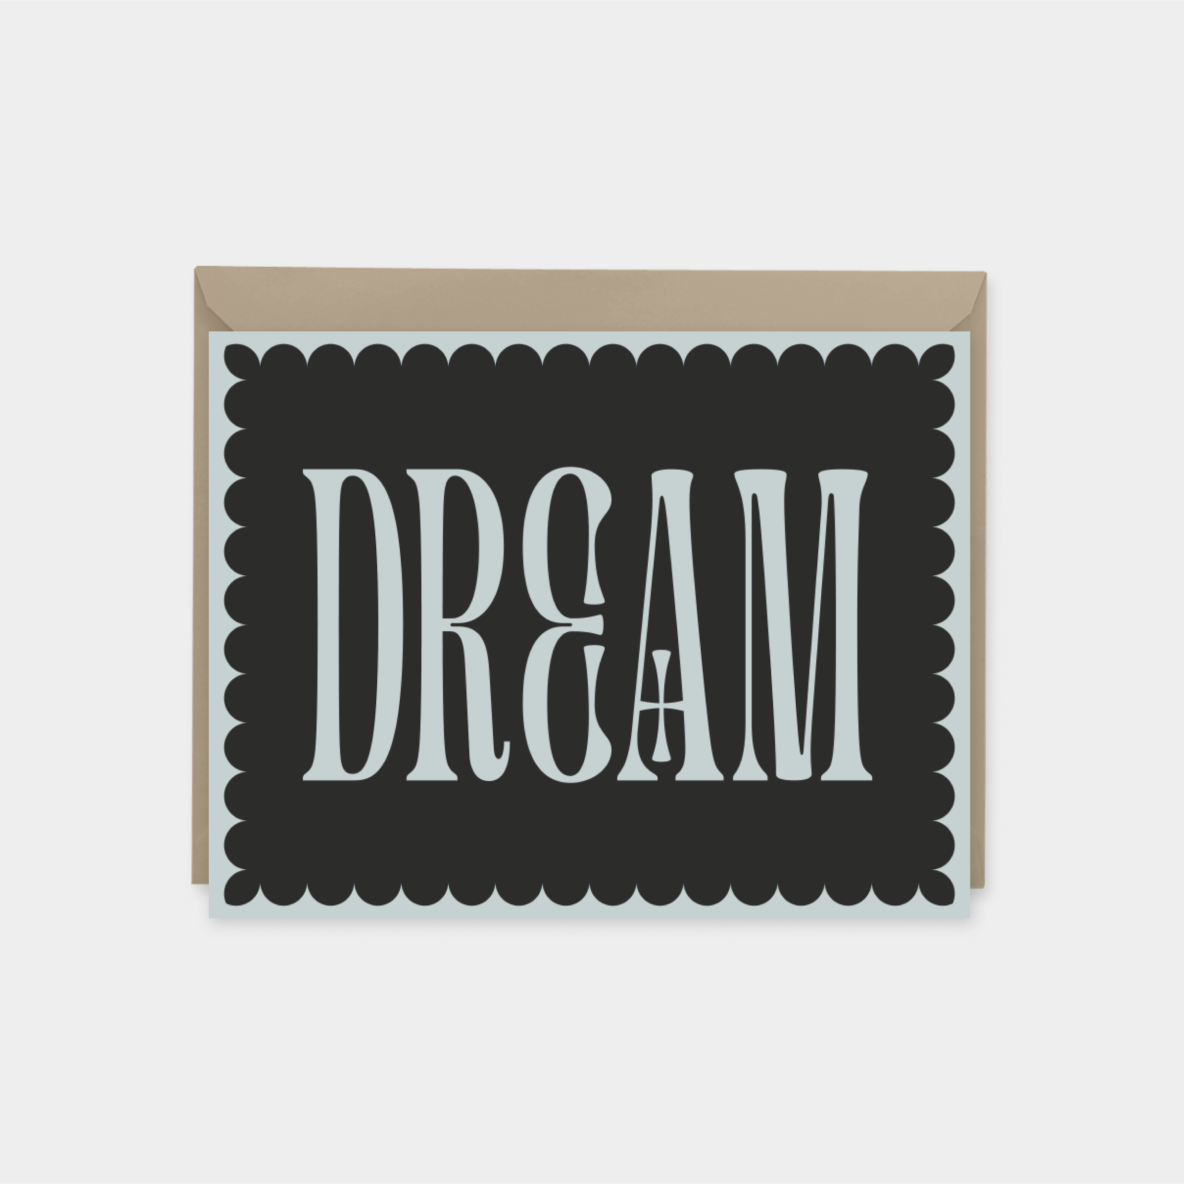 dream - ornate typography card